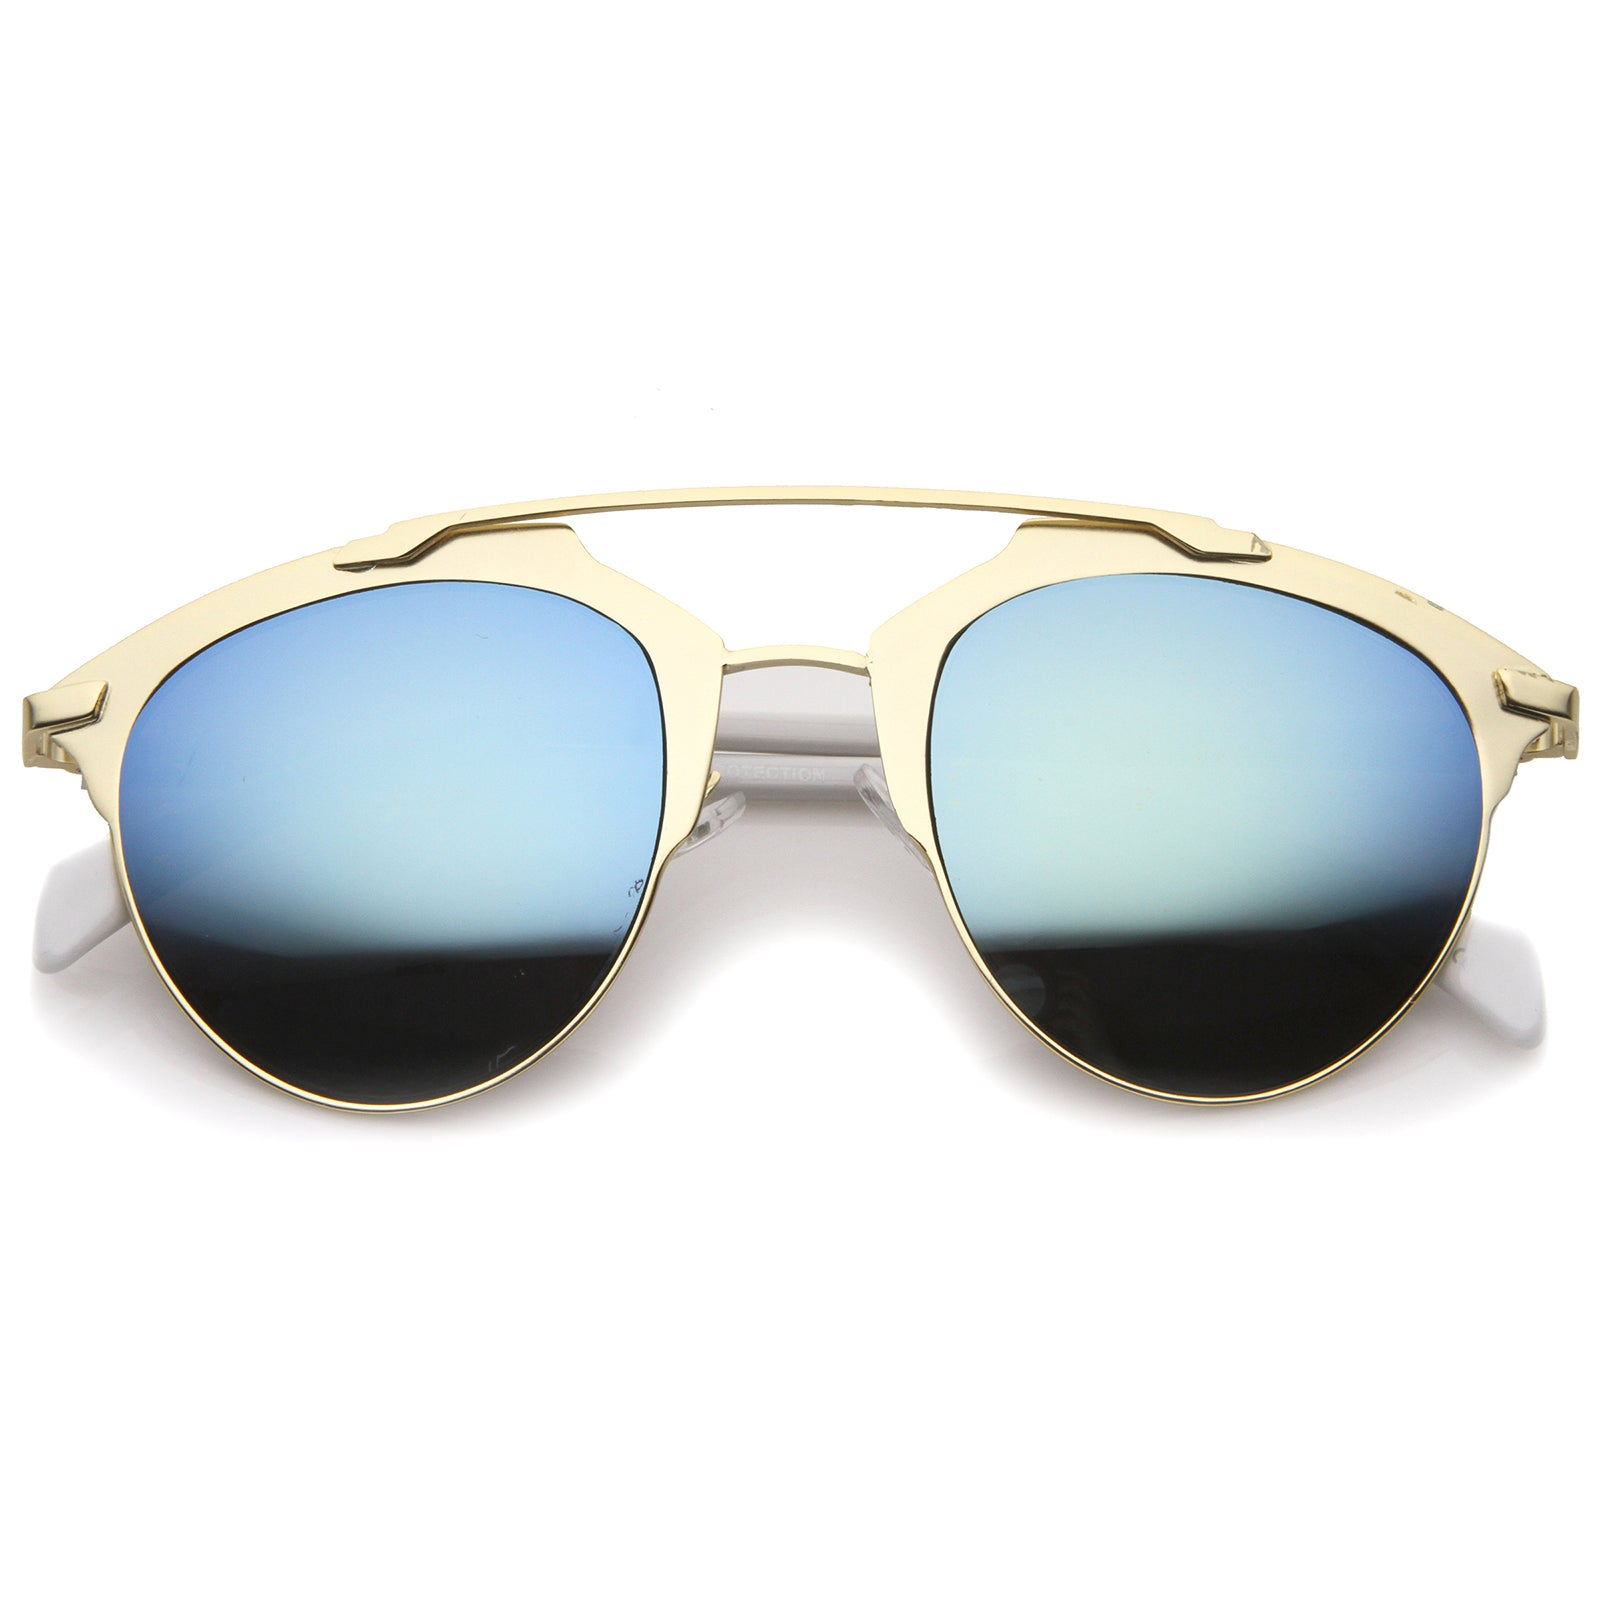 Modern Fashion Metal Double Bridge Mirror Lens Pantos Aviator Sunglasses 50mm - sunglass.la - 1